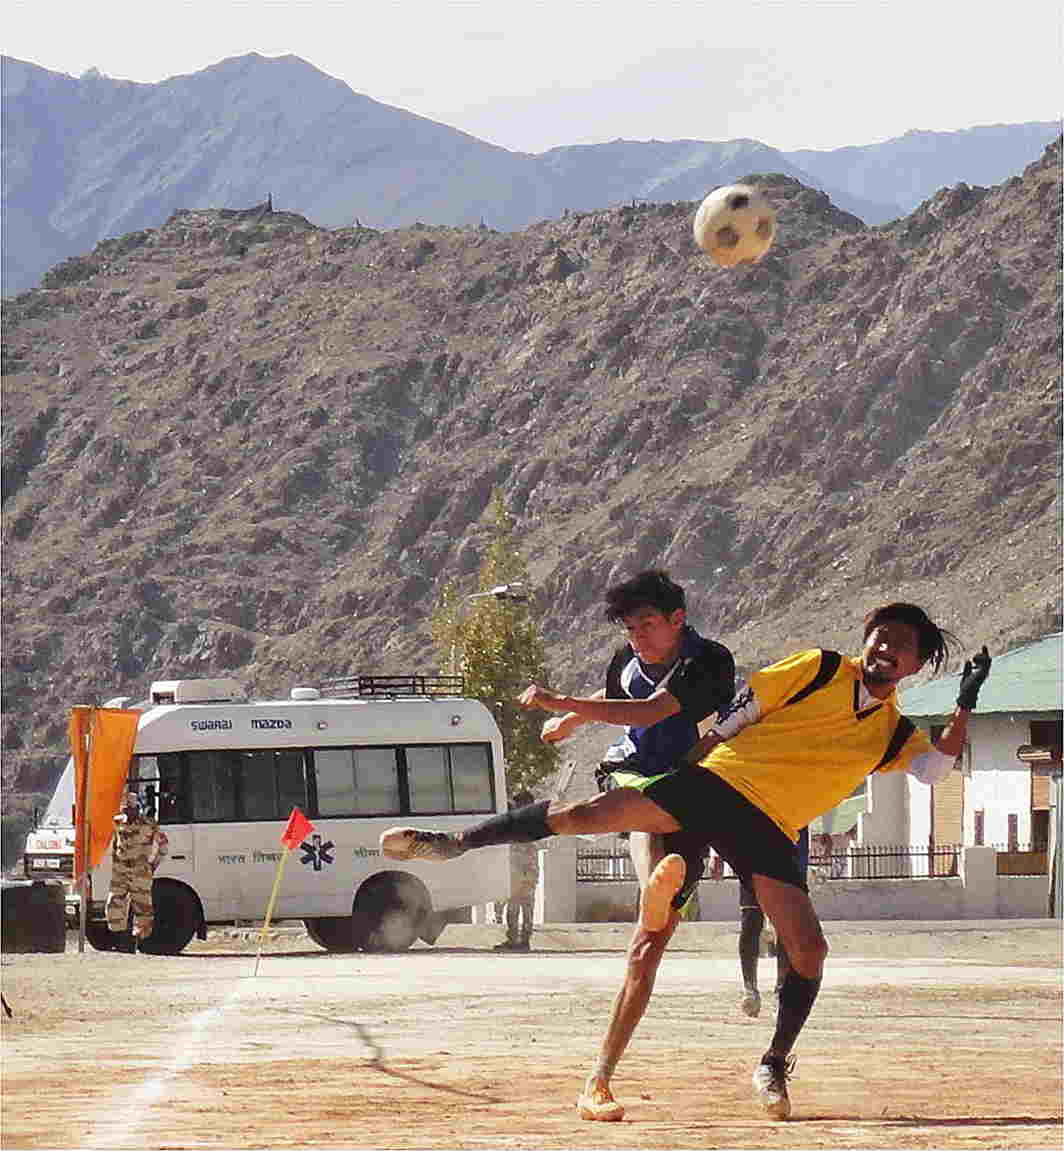 SPORTING HIGH: Youths from villages situated at 11,000 to 14,500 feet participate in Hi -Altitude Football Tournament organised by ITBP in Leh, UNI